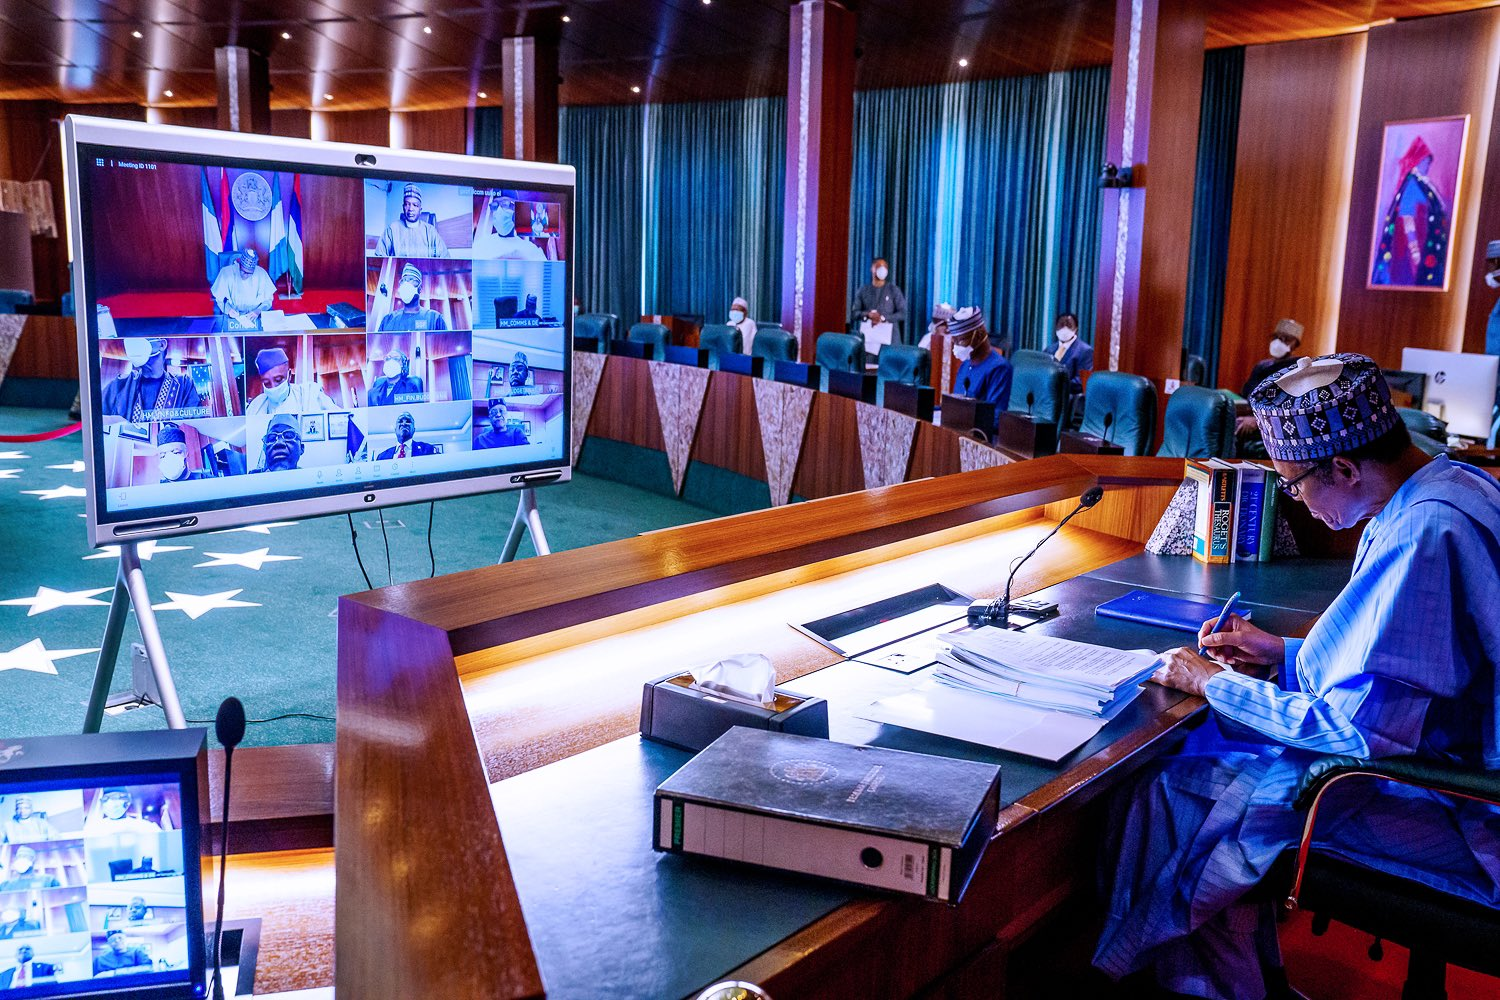 Buhari In Video Meeting With European Council President Over Okonjo Iweala